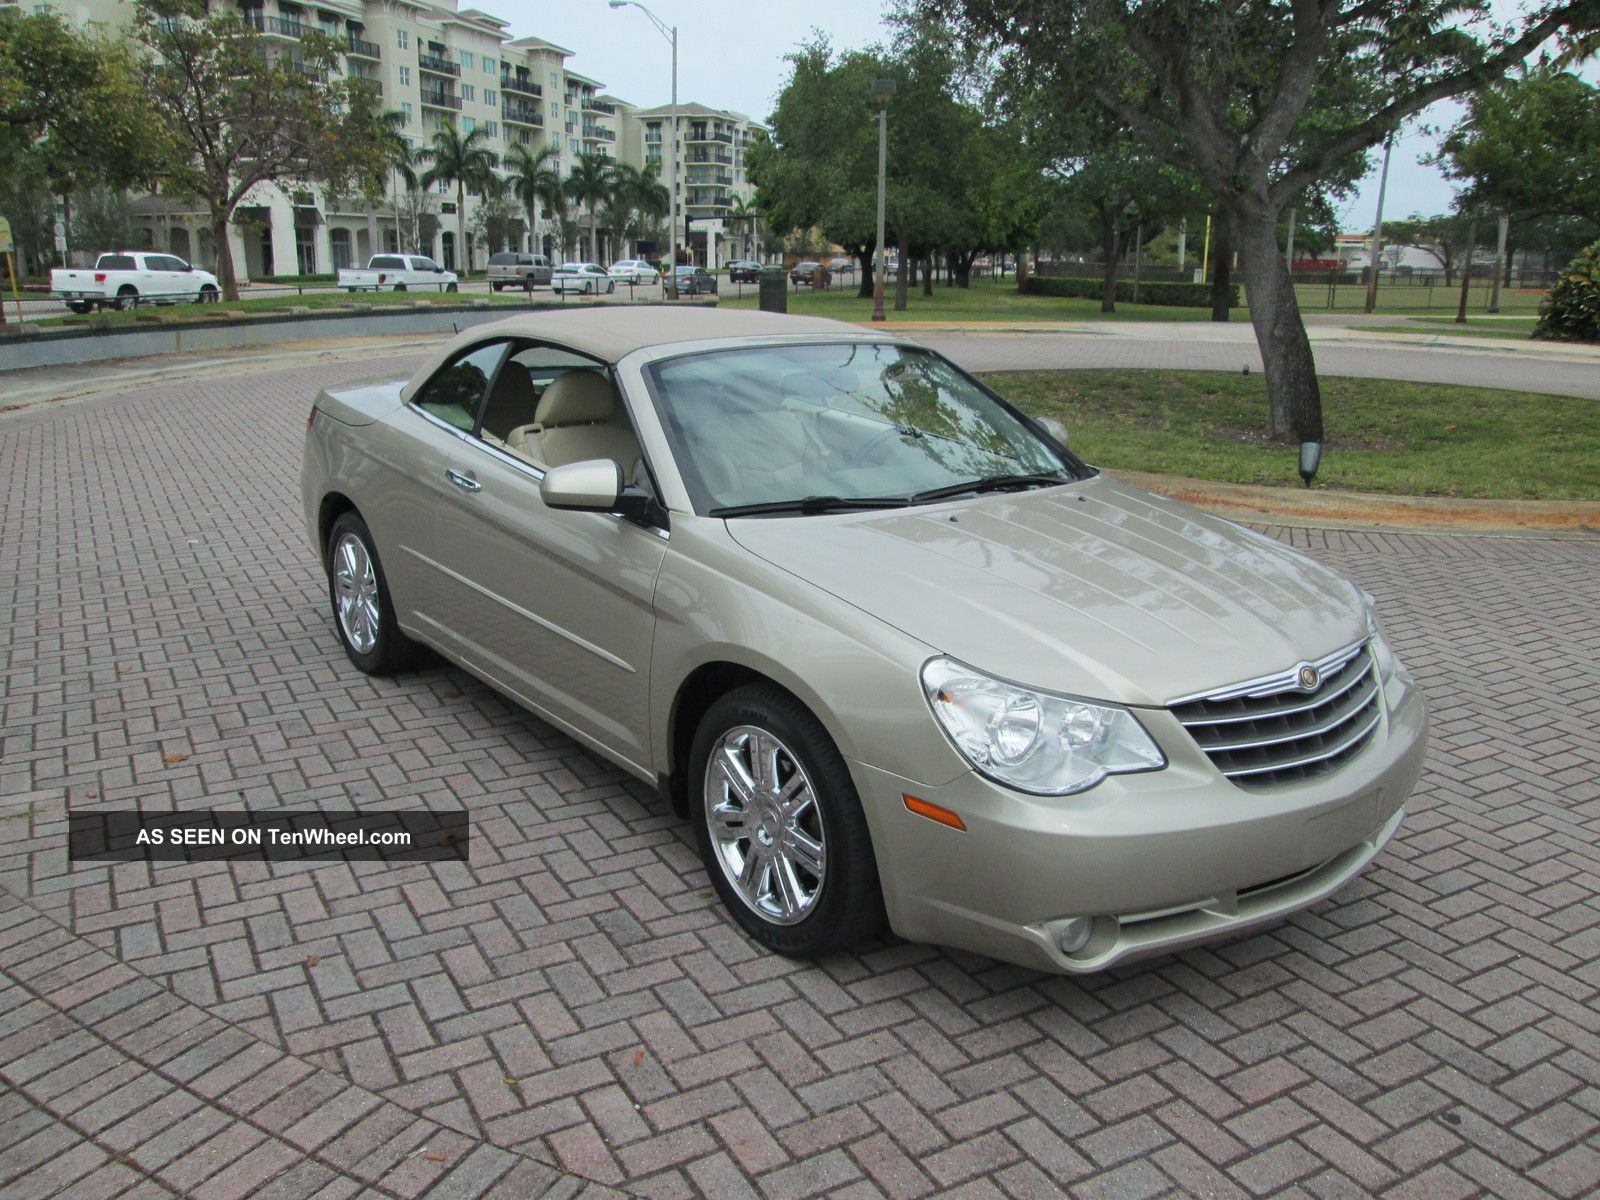 2008 chrysler sebring limited convertible fla car sebring photo 2. Cars Review. Best American Auto & Cars Review